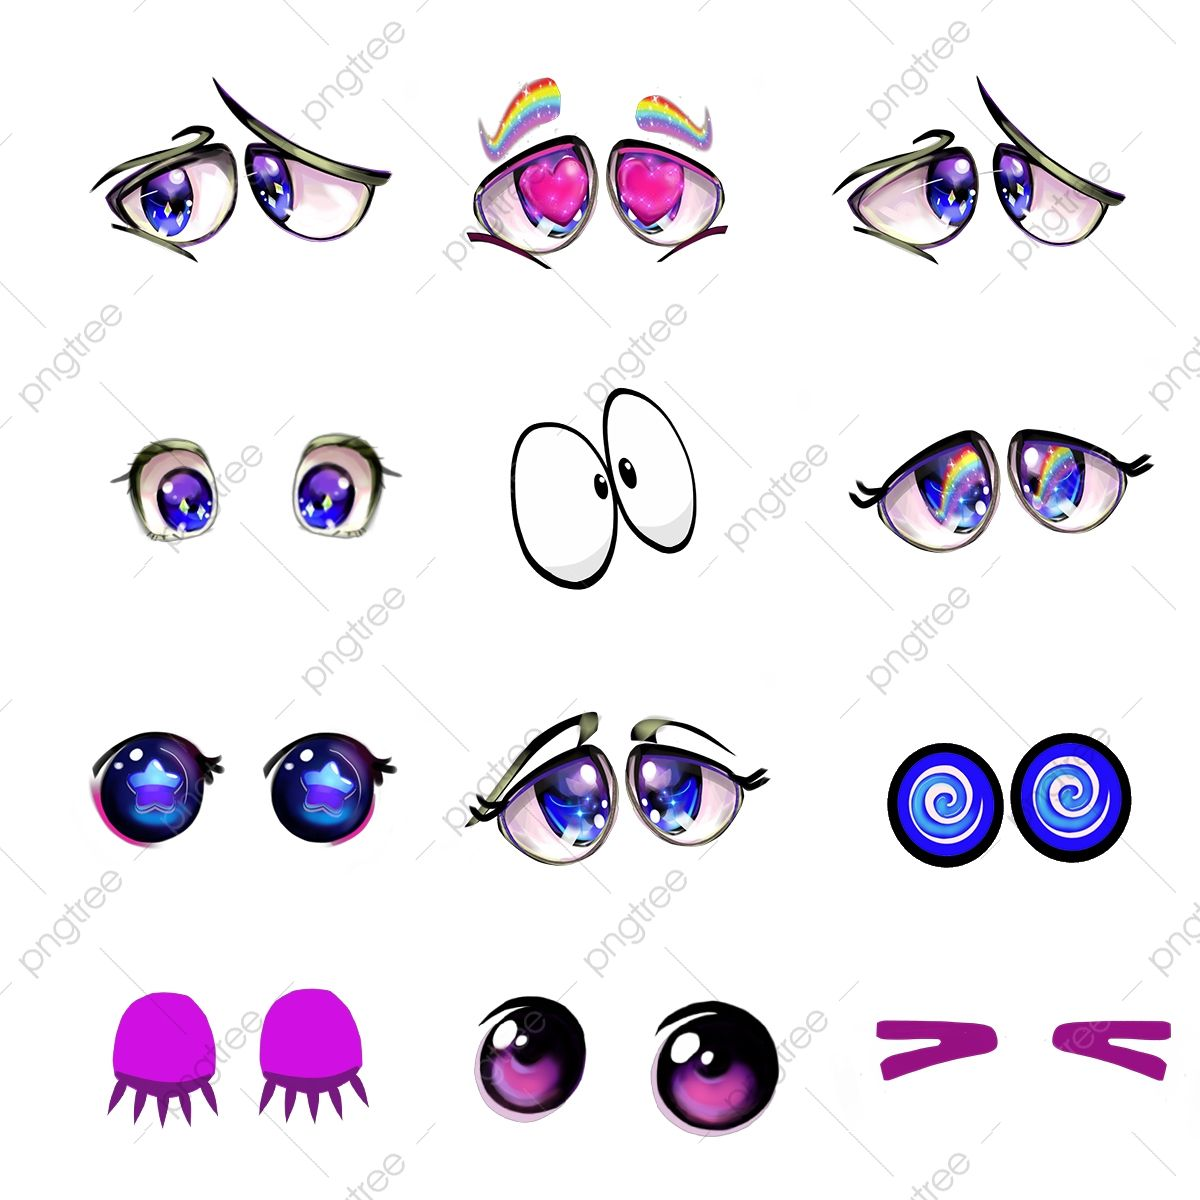 Funny Cute Cartoon Eyes Handdrawn Digital Art Eyes Clipart Png Eye Png Transparent Clipart Image And Psd File For Free Download Cute Cartoon Eyes Cartoon Eyes How To Draw Hands